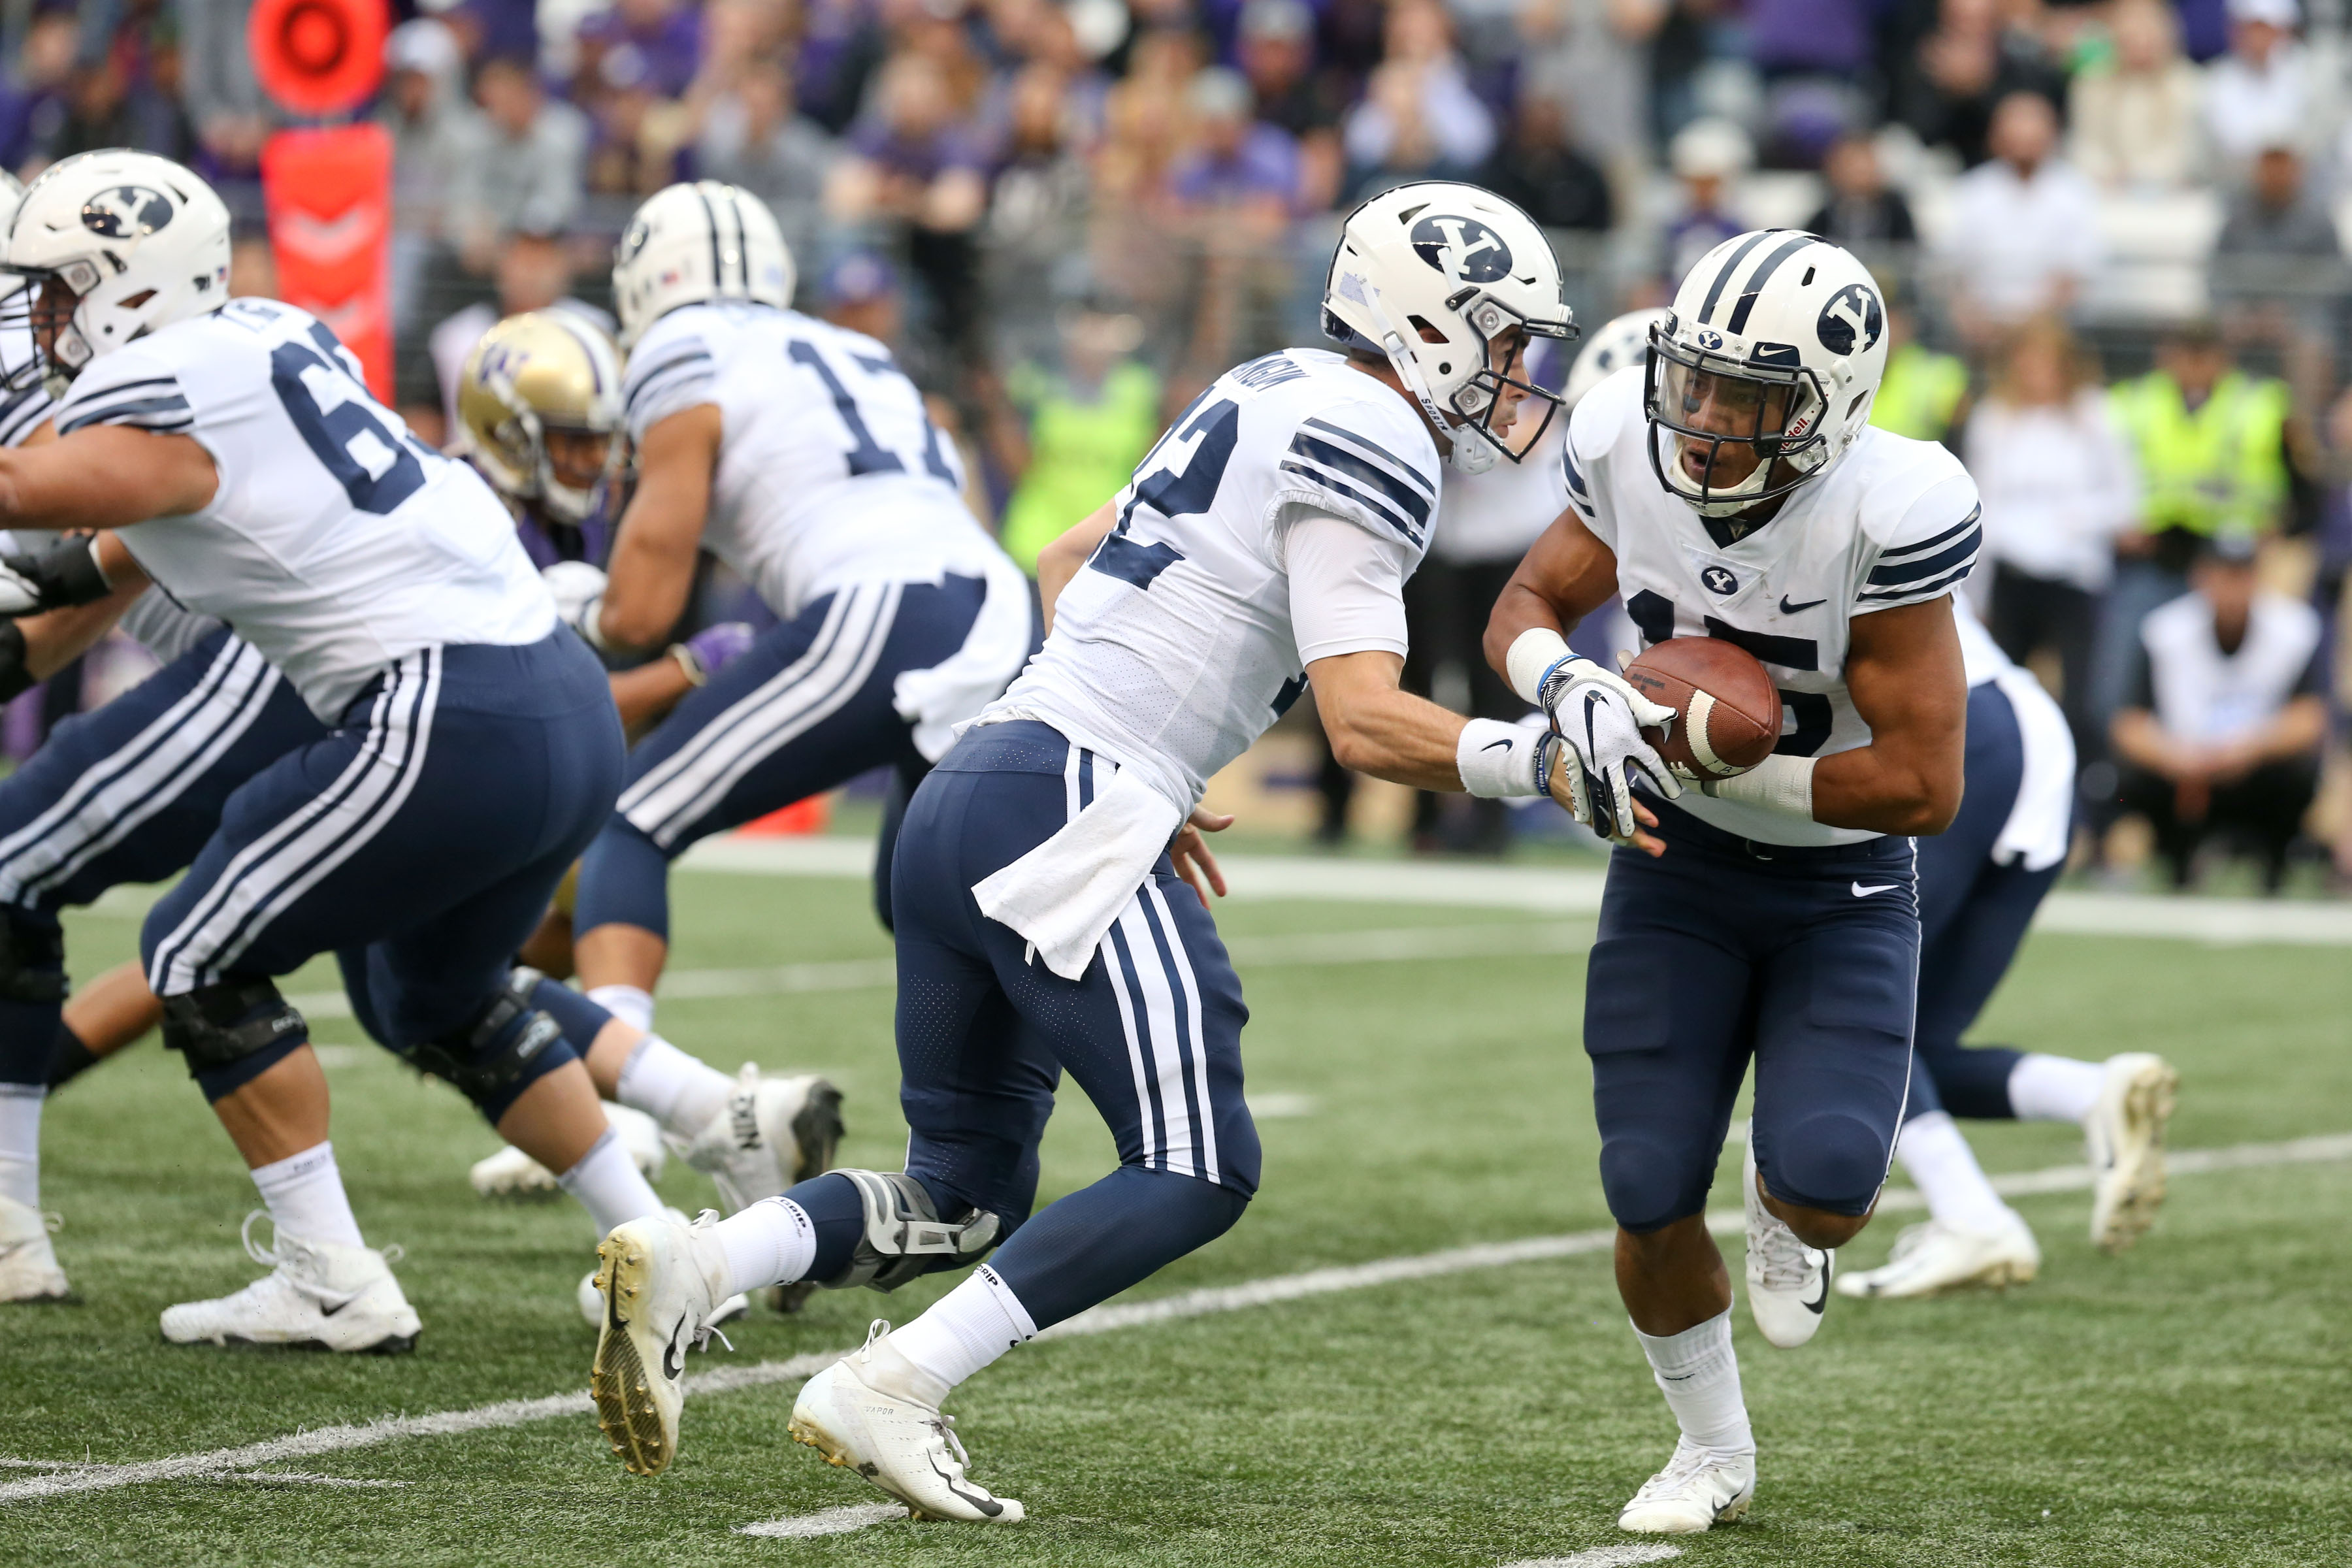 COLLEGE FOOTBALL: SEP 29 BYU at Washington